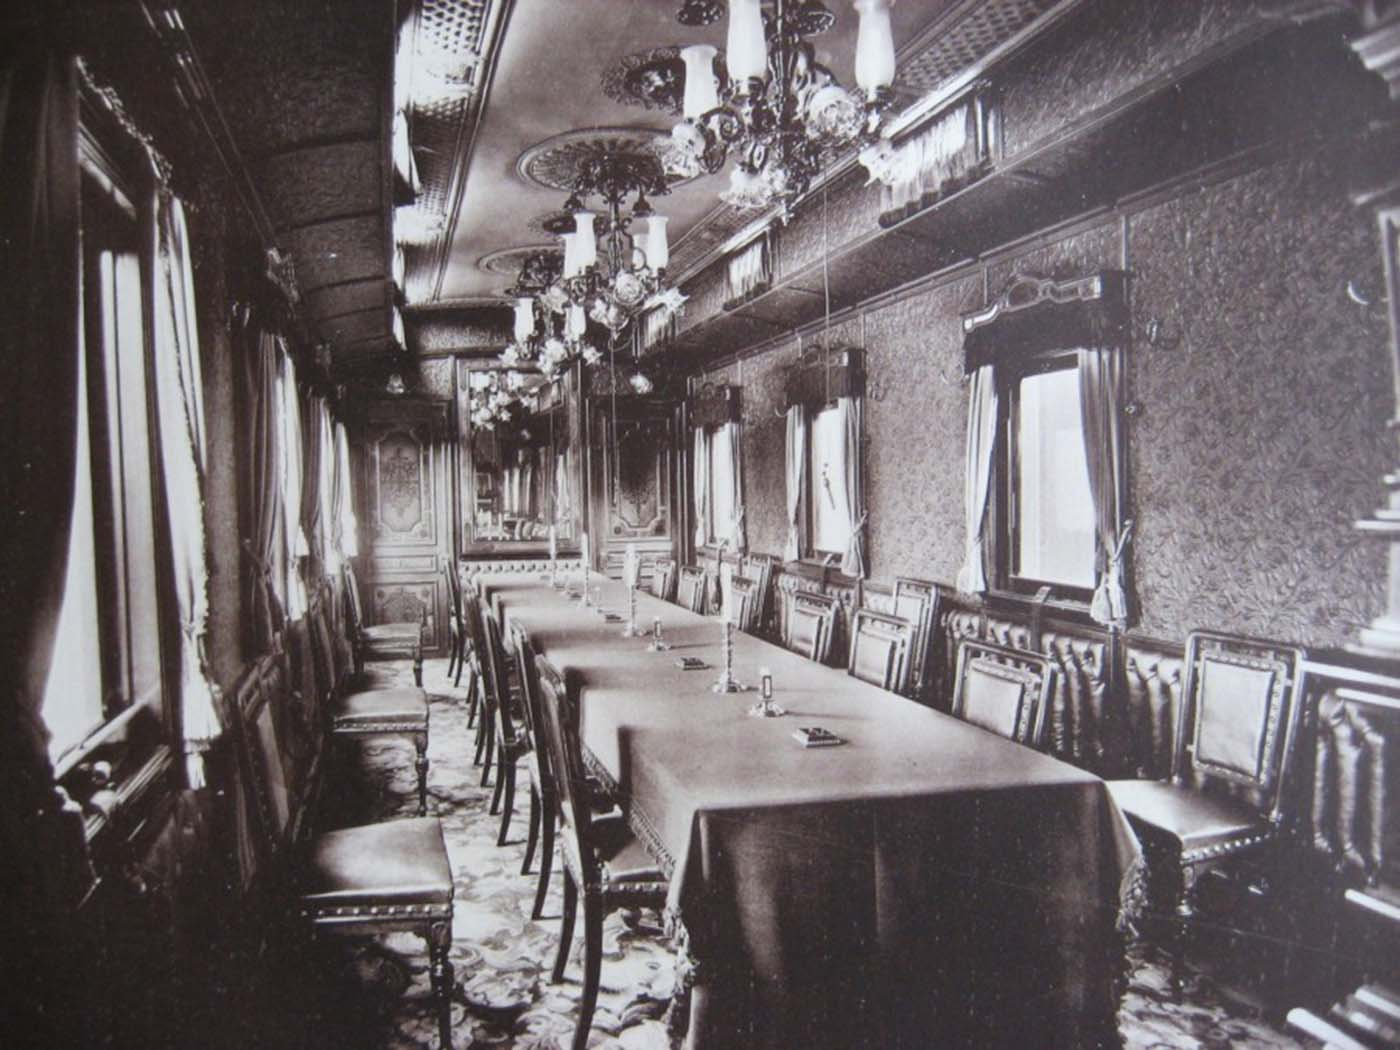 Gray Upholstered Dining Chairs Set Of 6 Inside Romanov's Imperial Train, 1890s-1900s